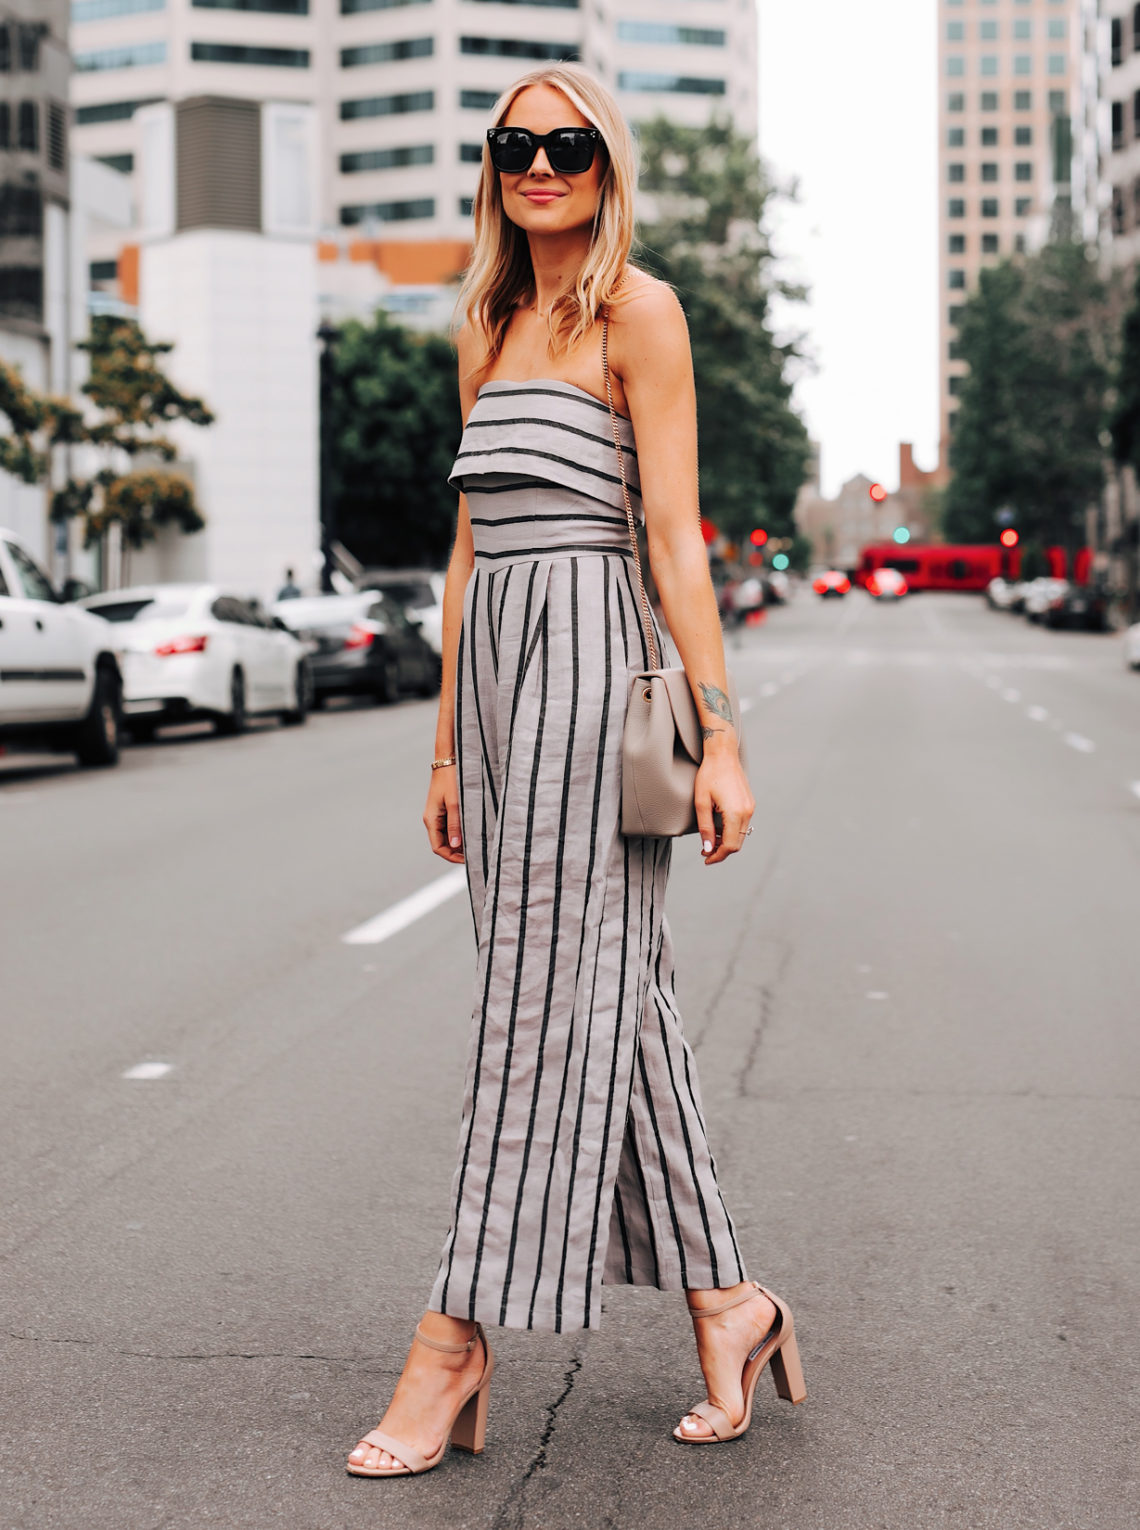 Fashion Jackson Wearing Jing Grey Strapless Stripe Jumpsuit Heeled Sandals Featured Image